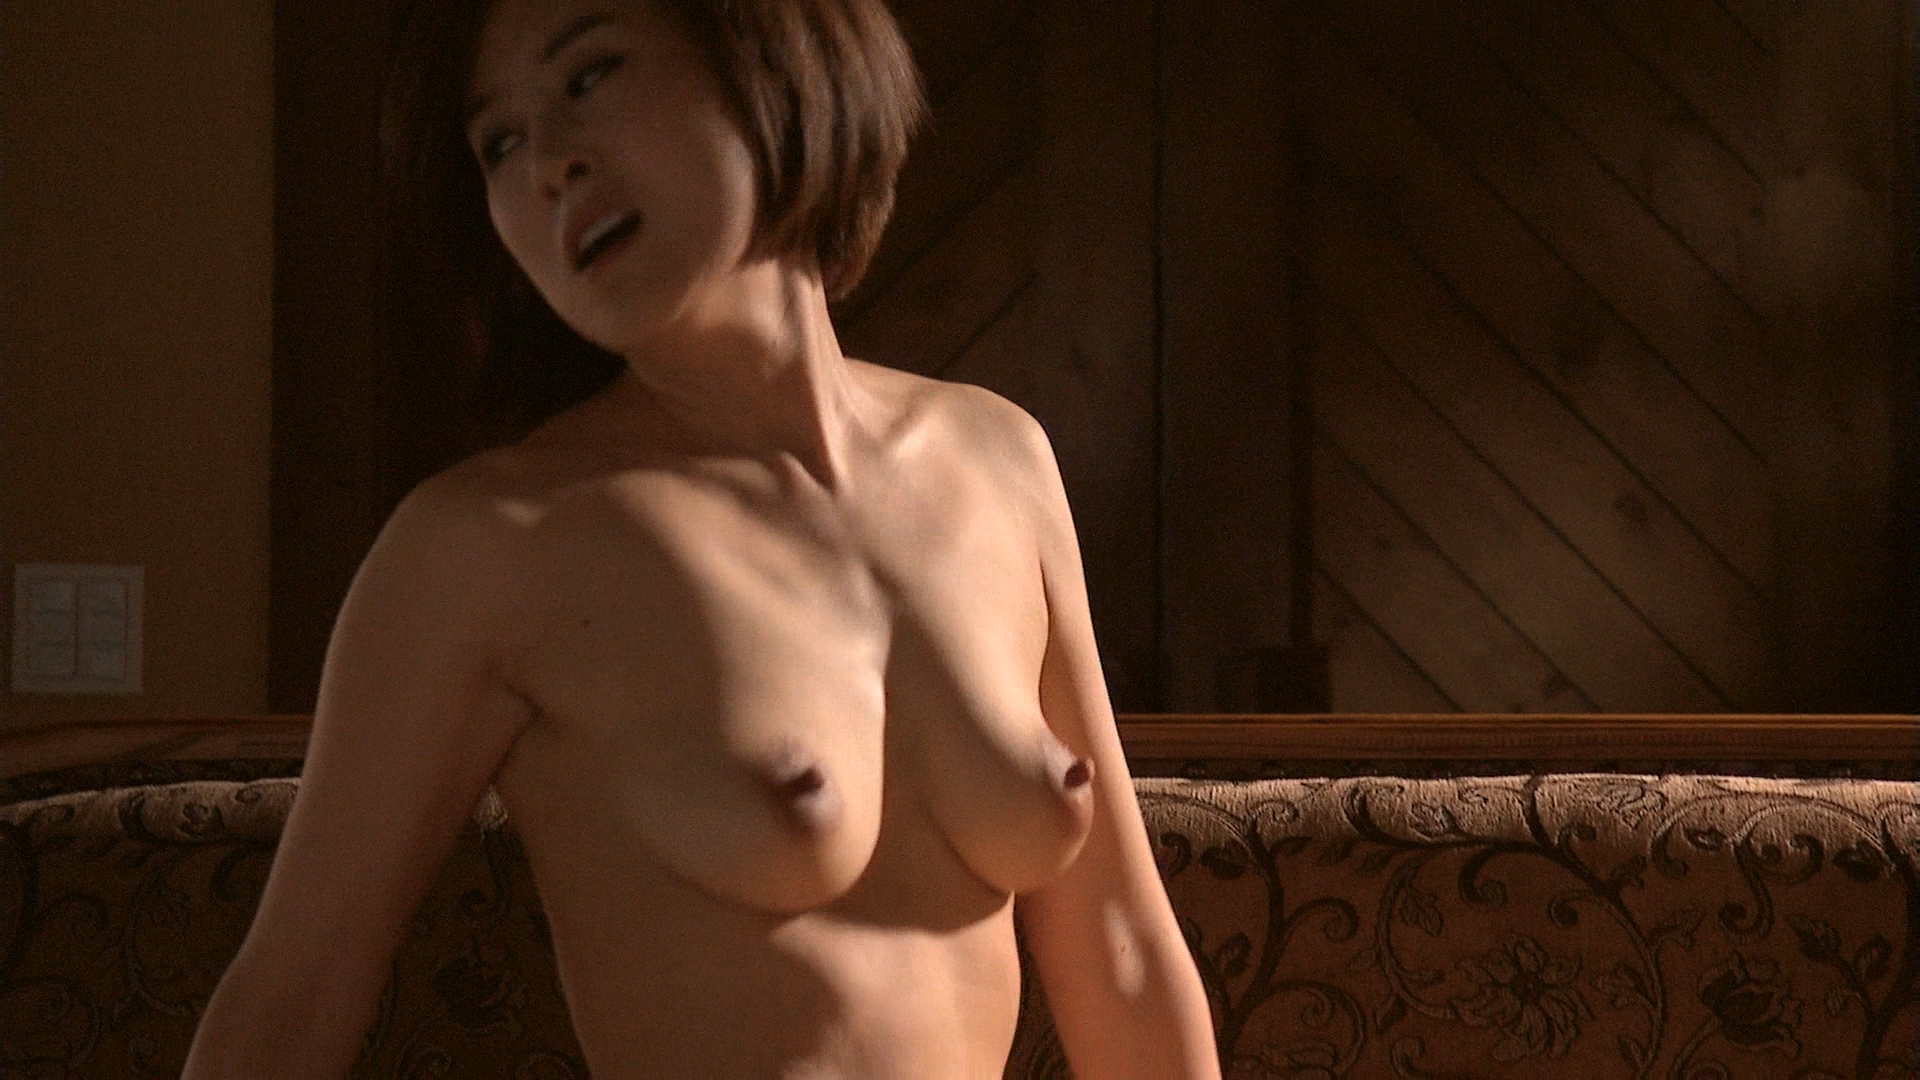 Aunties nude actress korea nude chick pussy